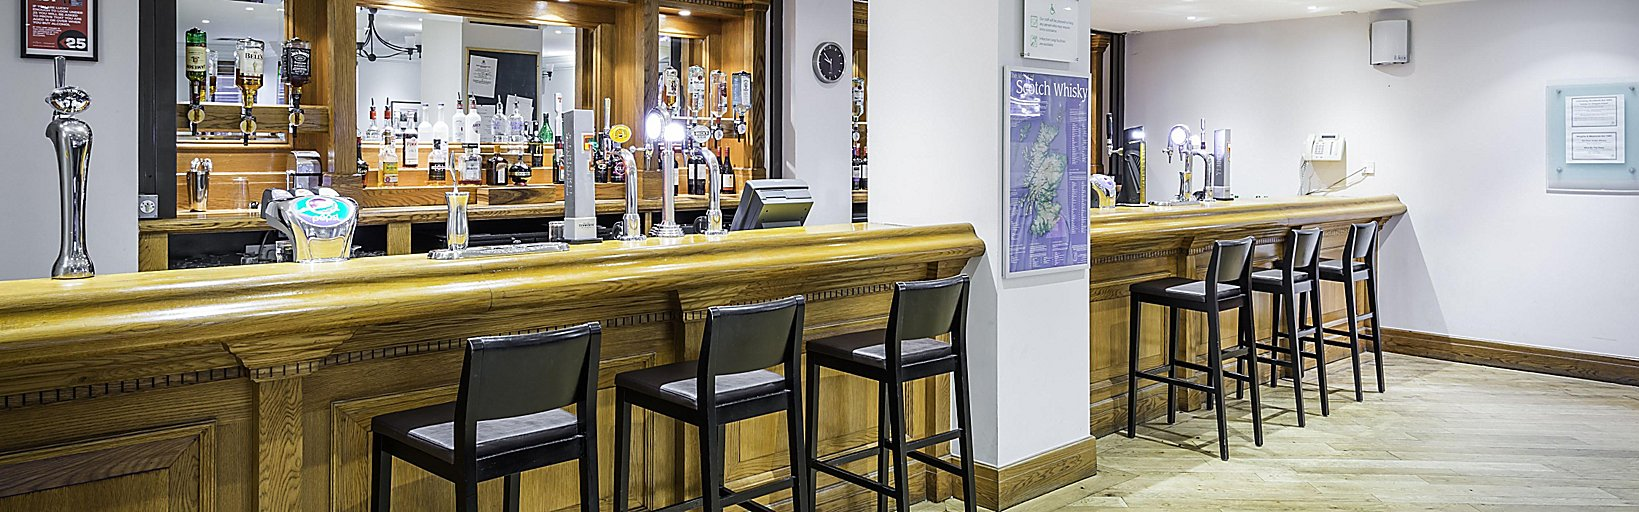 Glasgow Airport Hotels: Holiday Inn Glasgow Airport